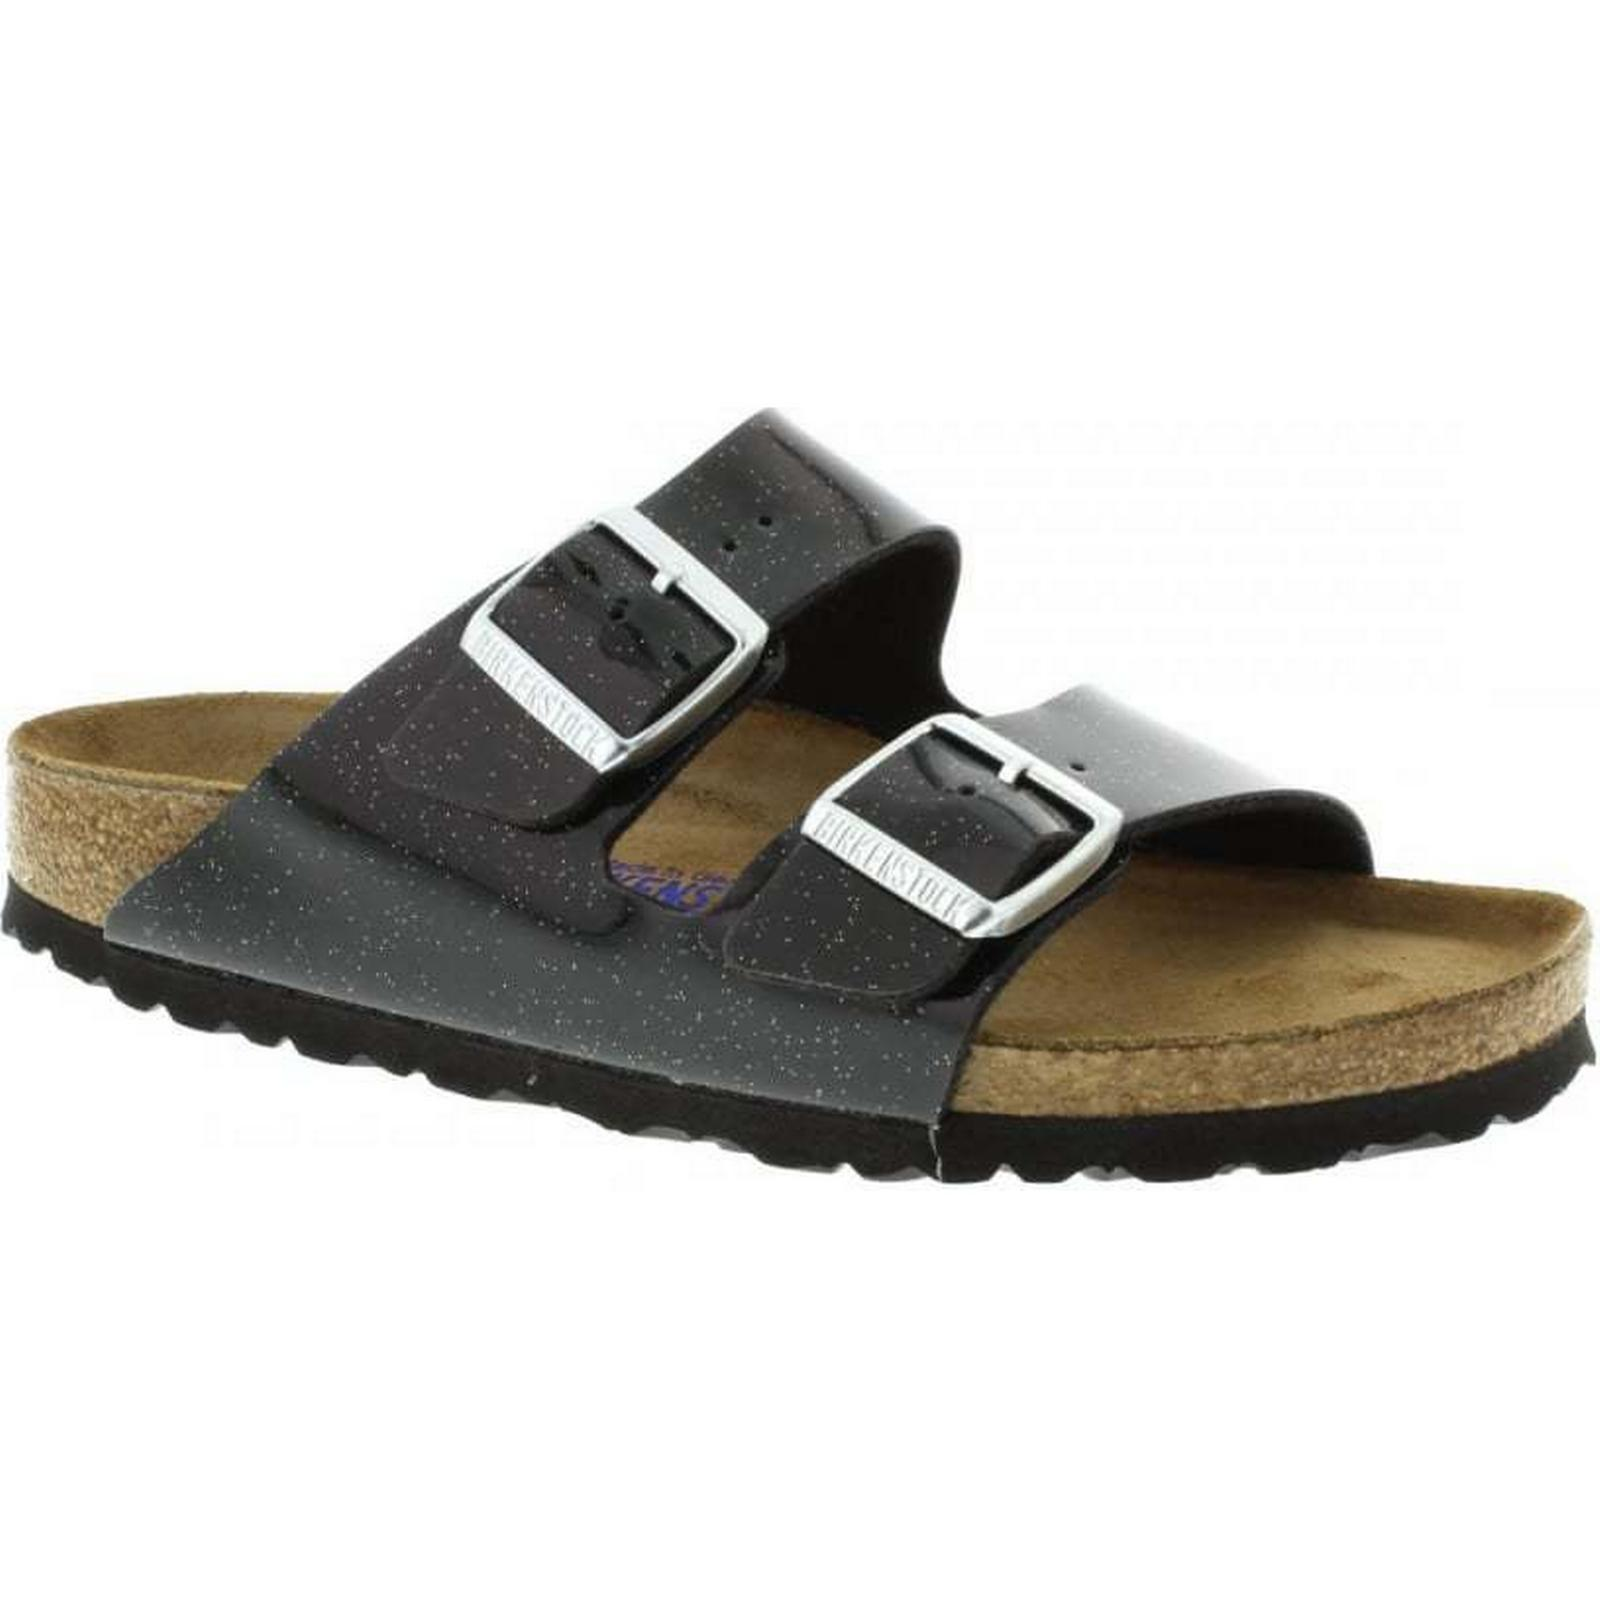 Birkenstock Arizona Magic Narrow Galaxy Narrow Magic Fit - Black 057633 Size: 37 EU 79e660